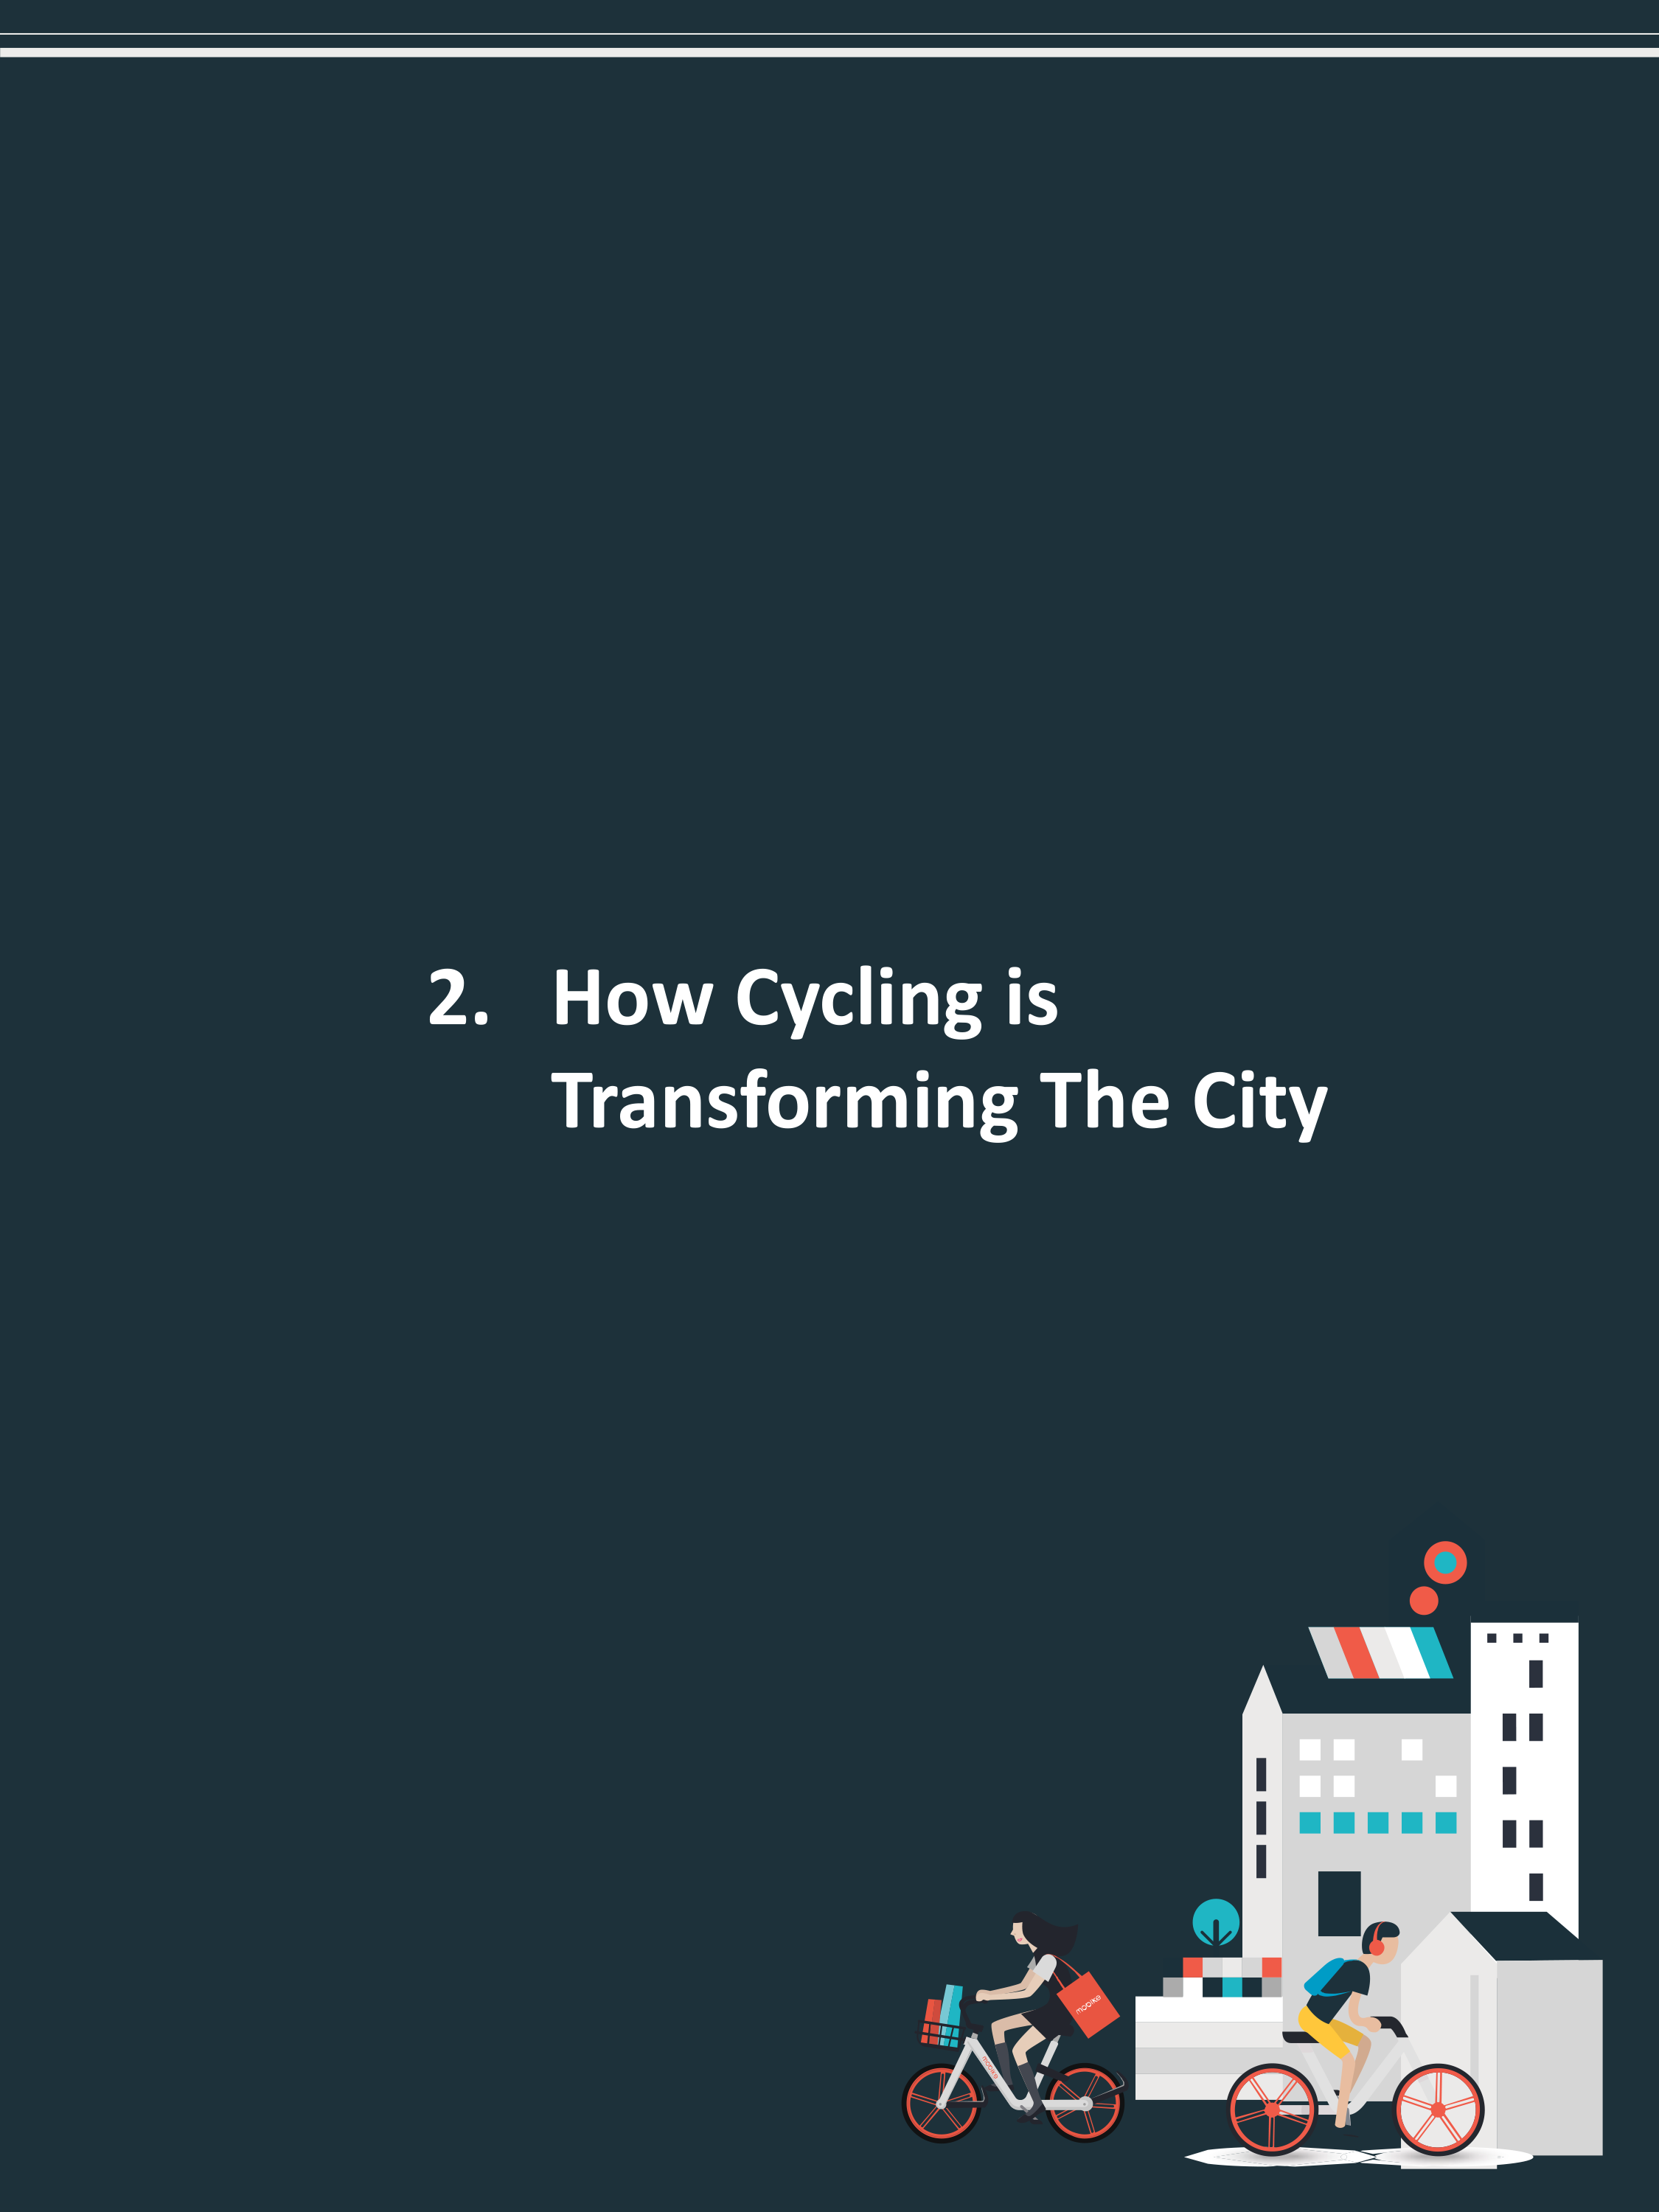 2. How Cycling is Transforming The City